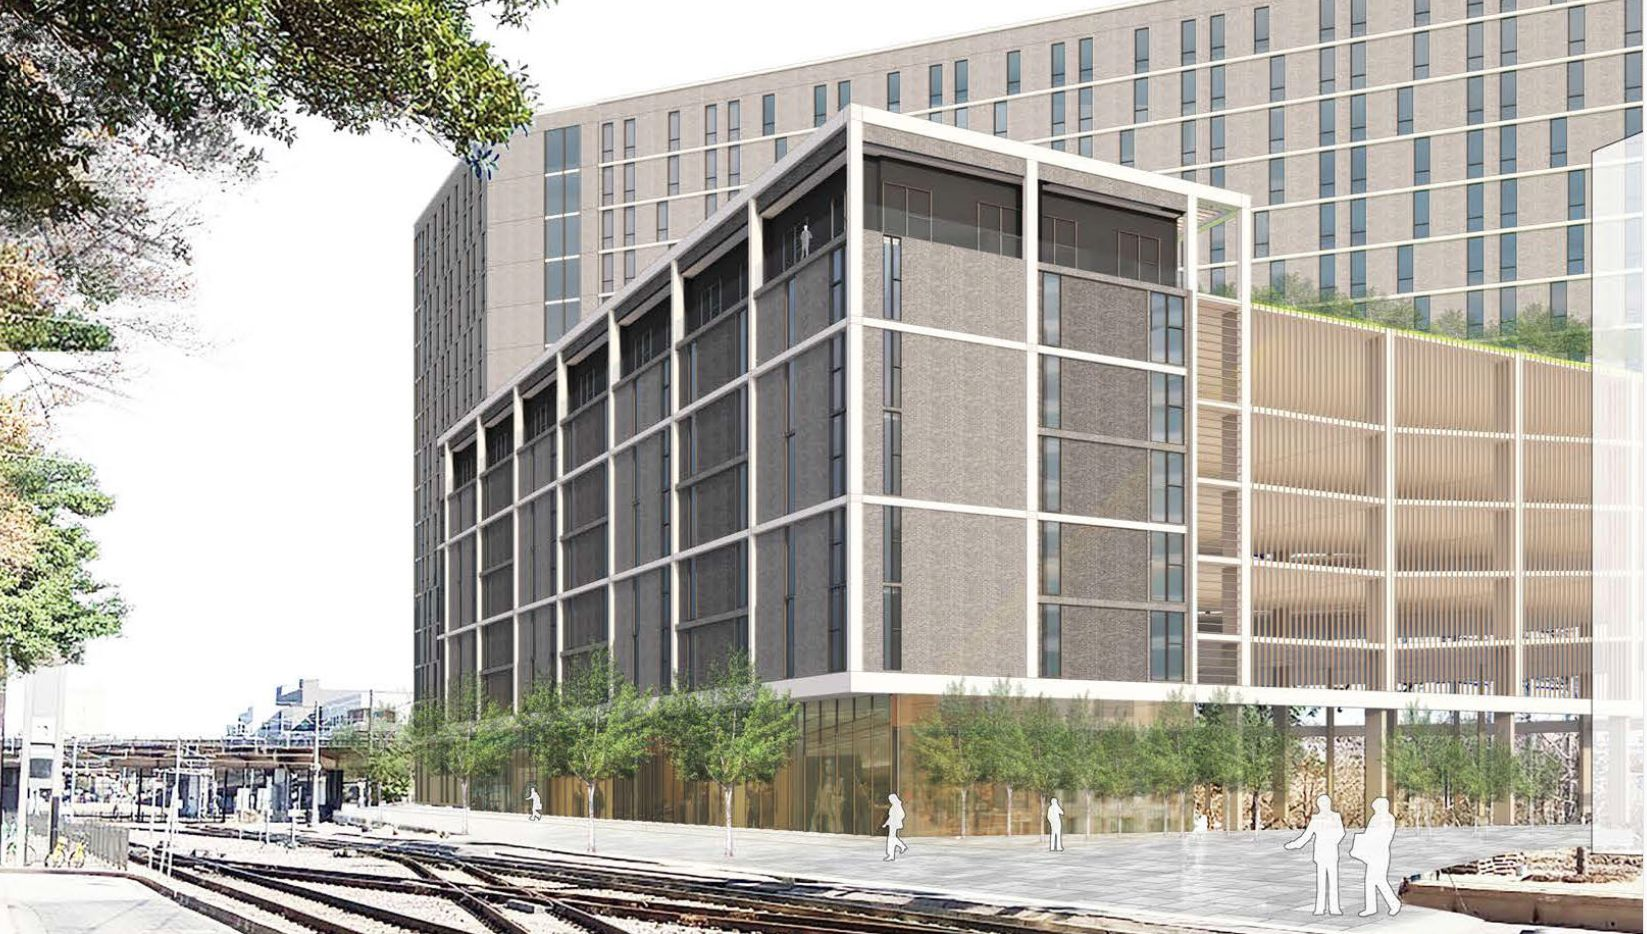 About half of the apartments in the planned 2400 Bryan tower are to be affordable units.